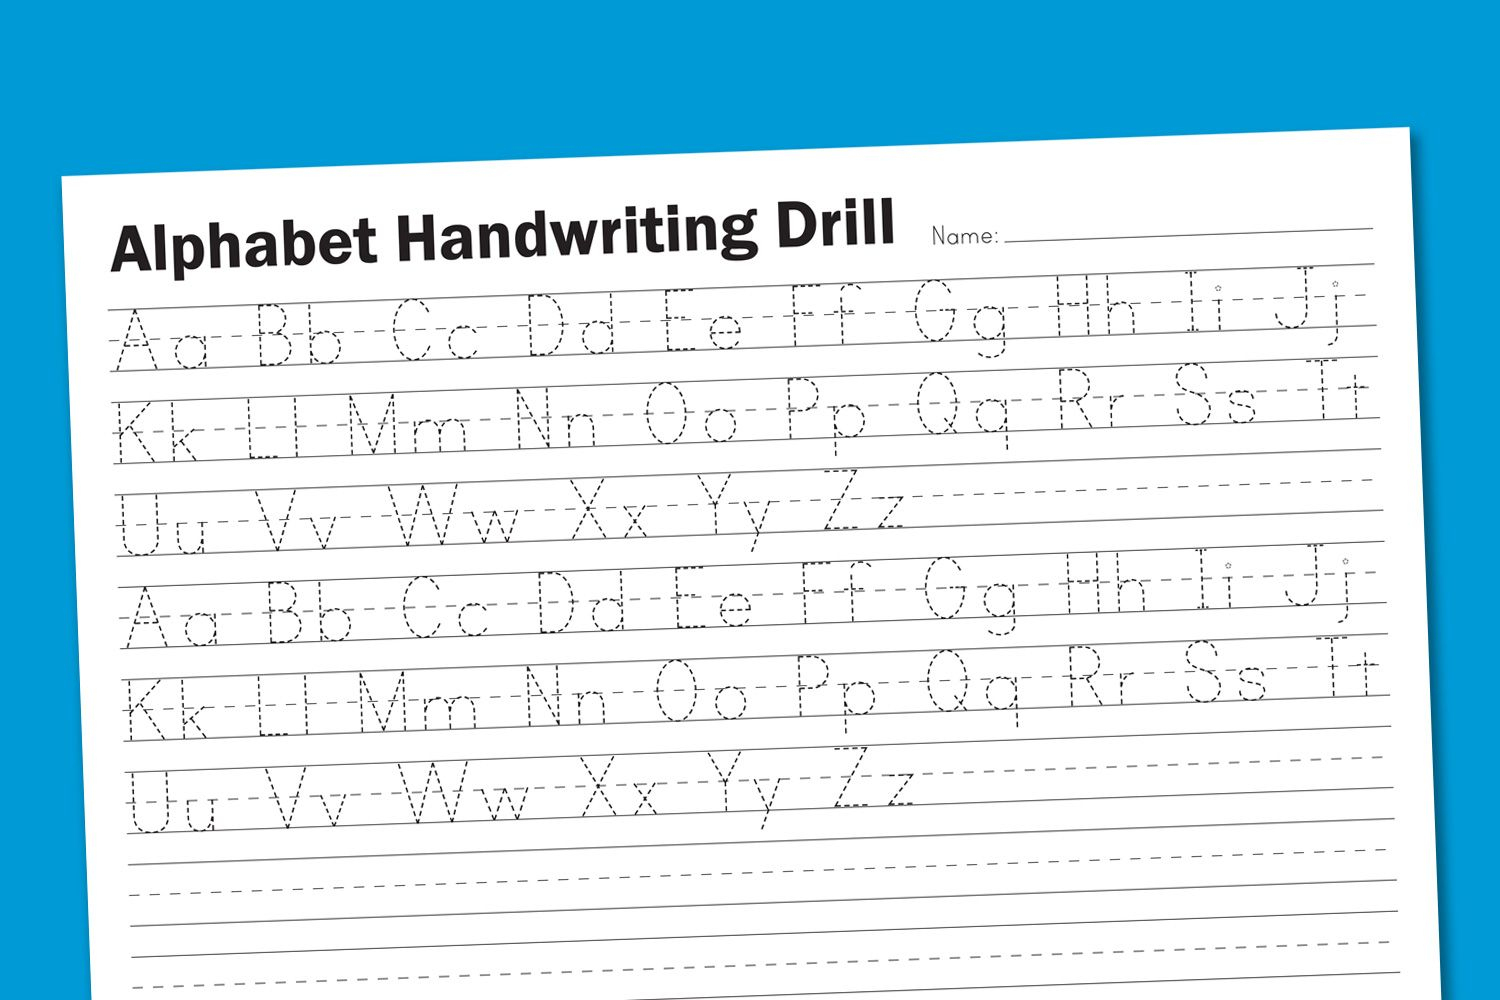 Alphabet Handwriting Drill | School Rules | Handwriting Worksheets | Printable Alphabet Handwriting Worksheets